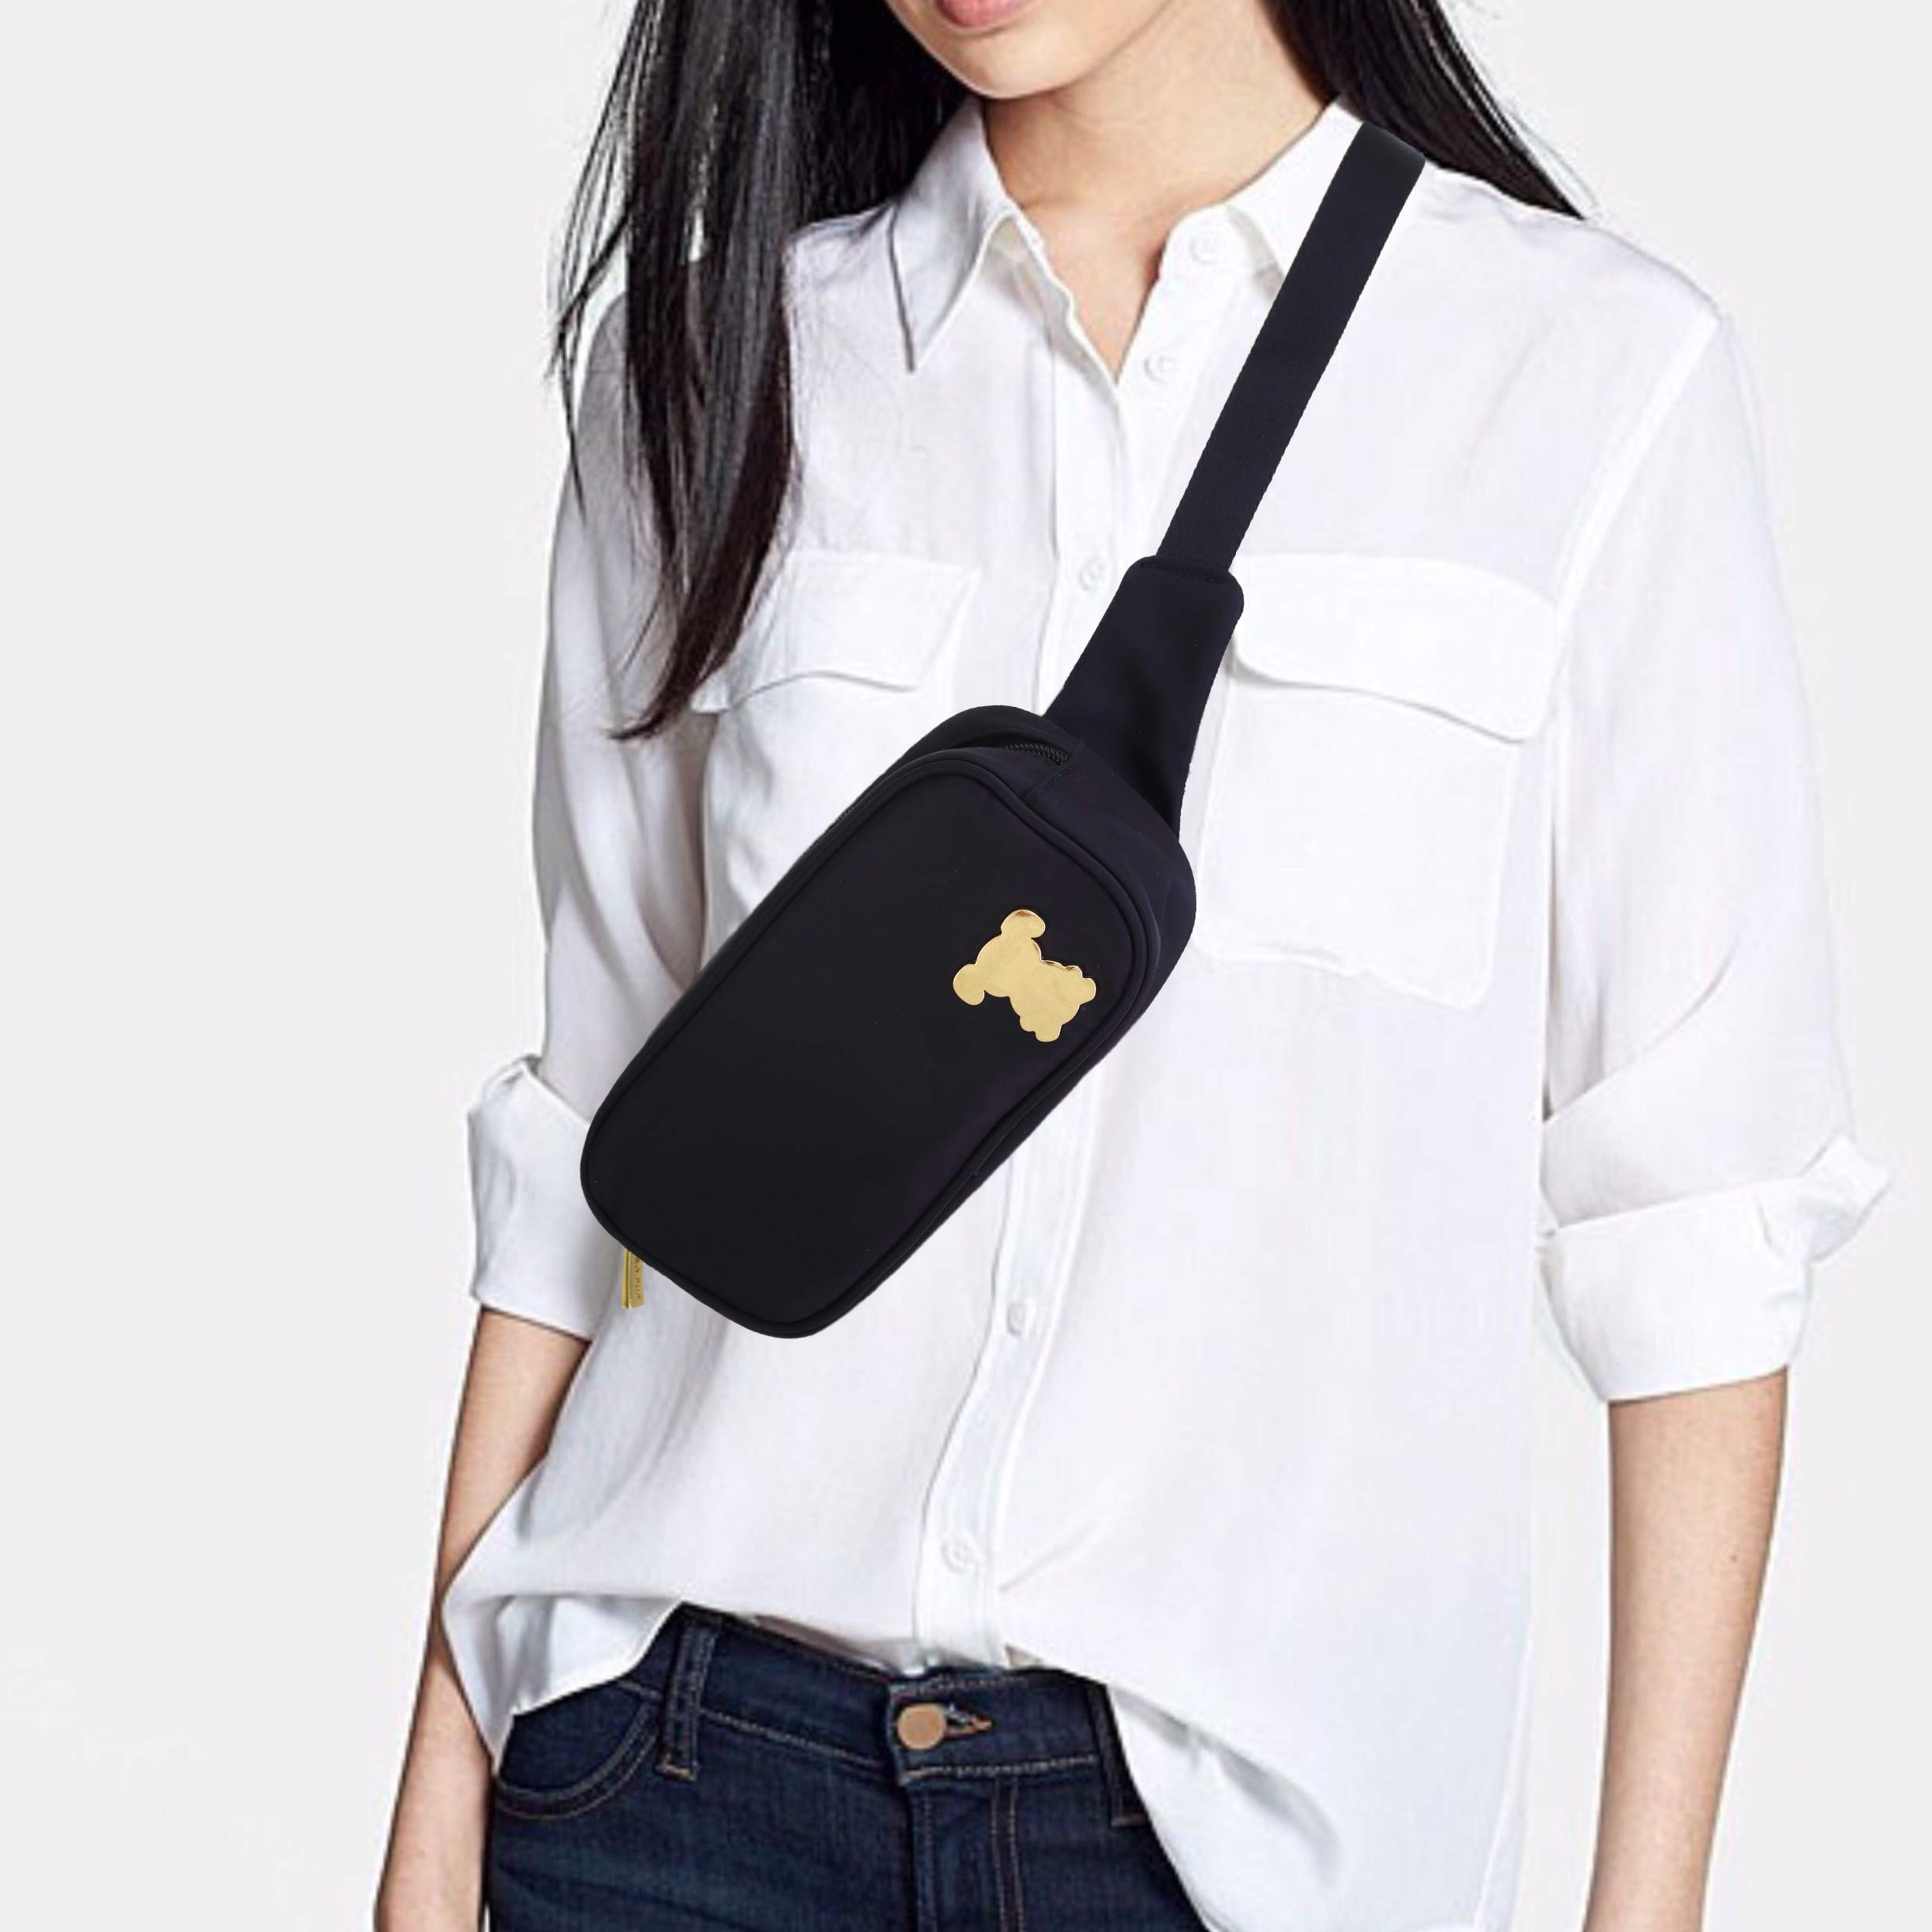 MISO PUP Fanny Pack - with Swing Buckle